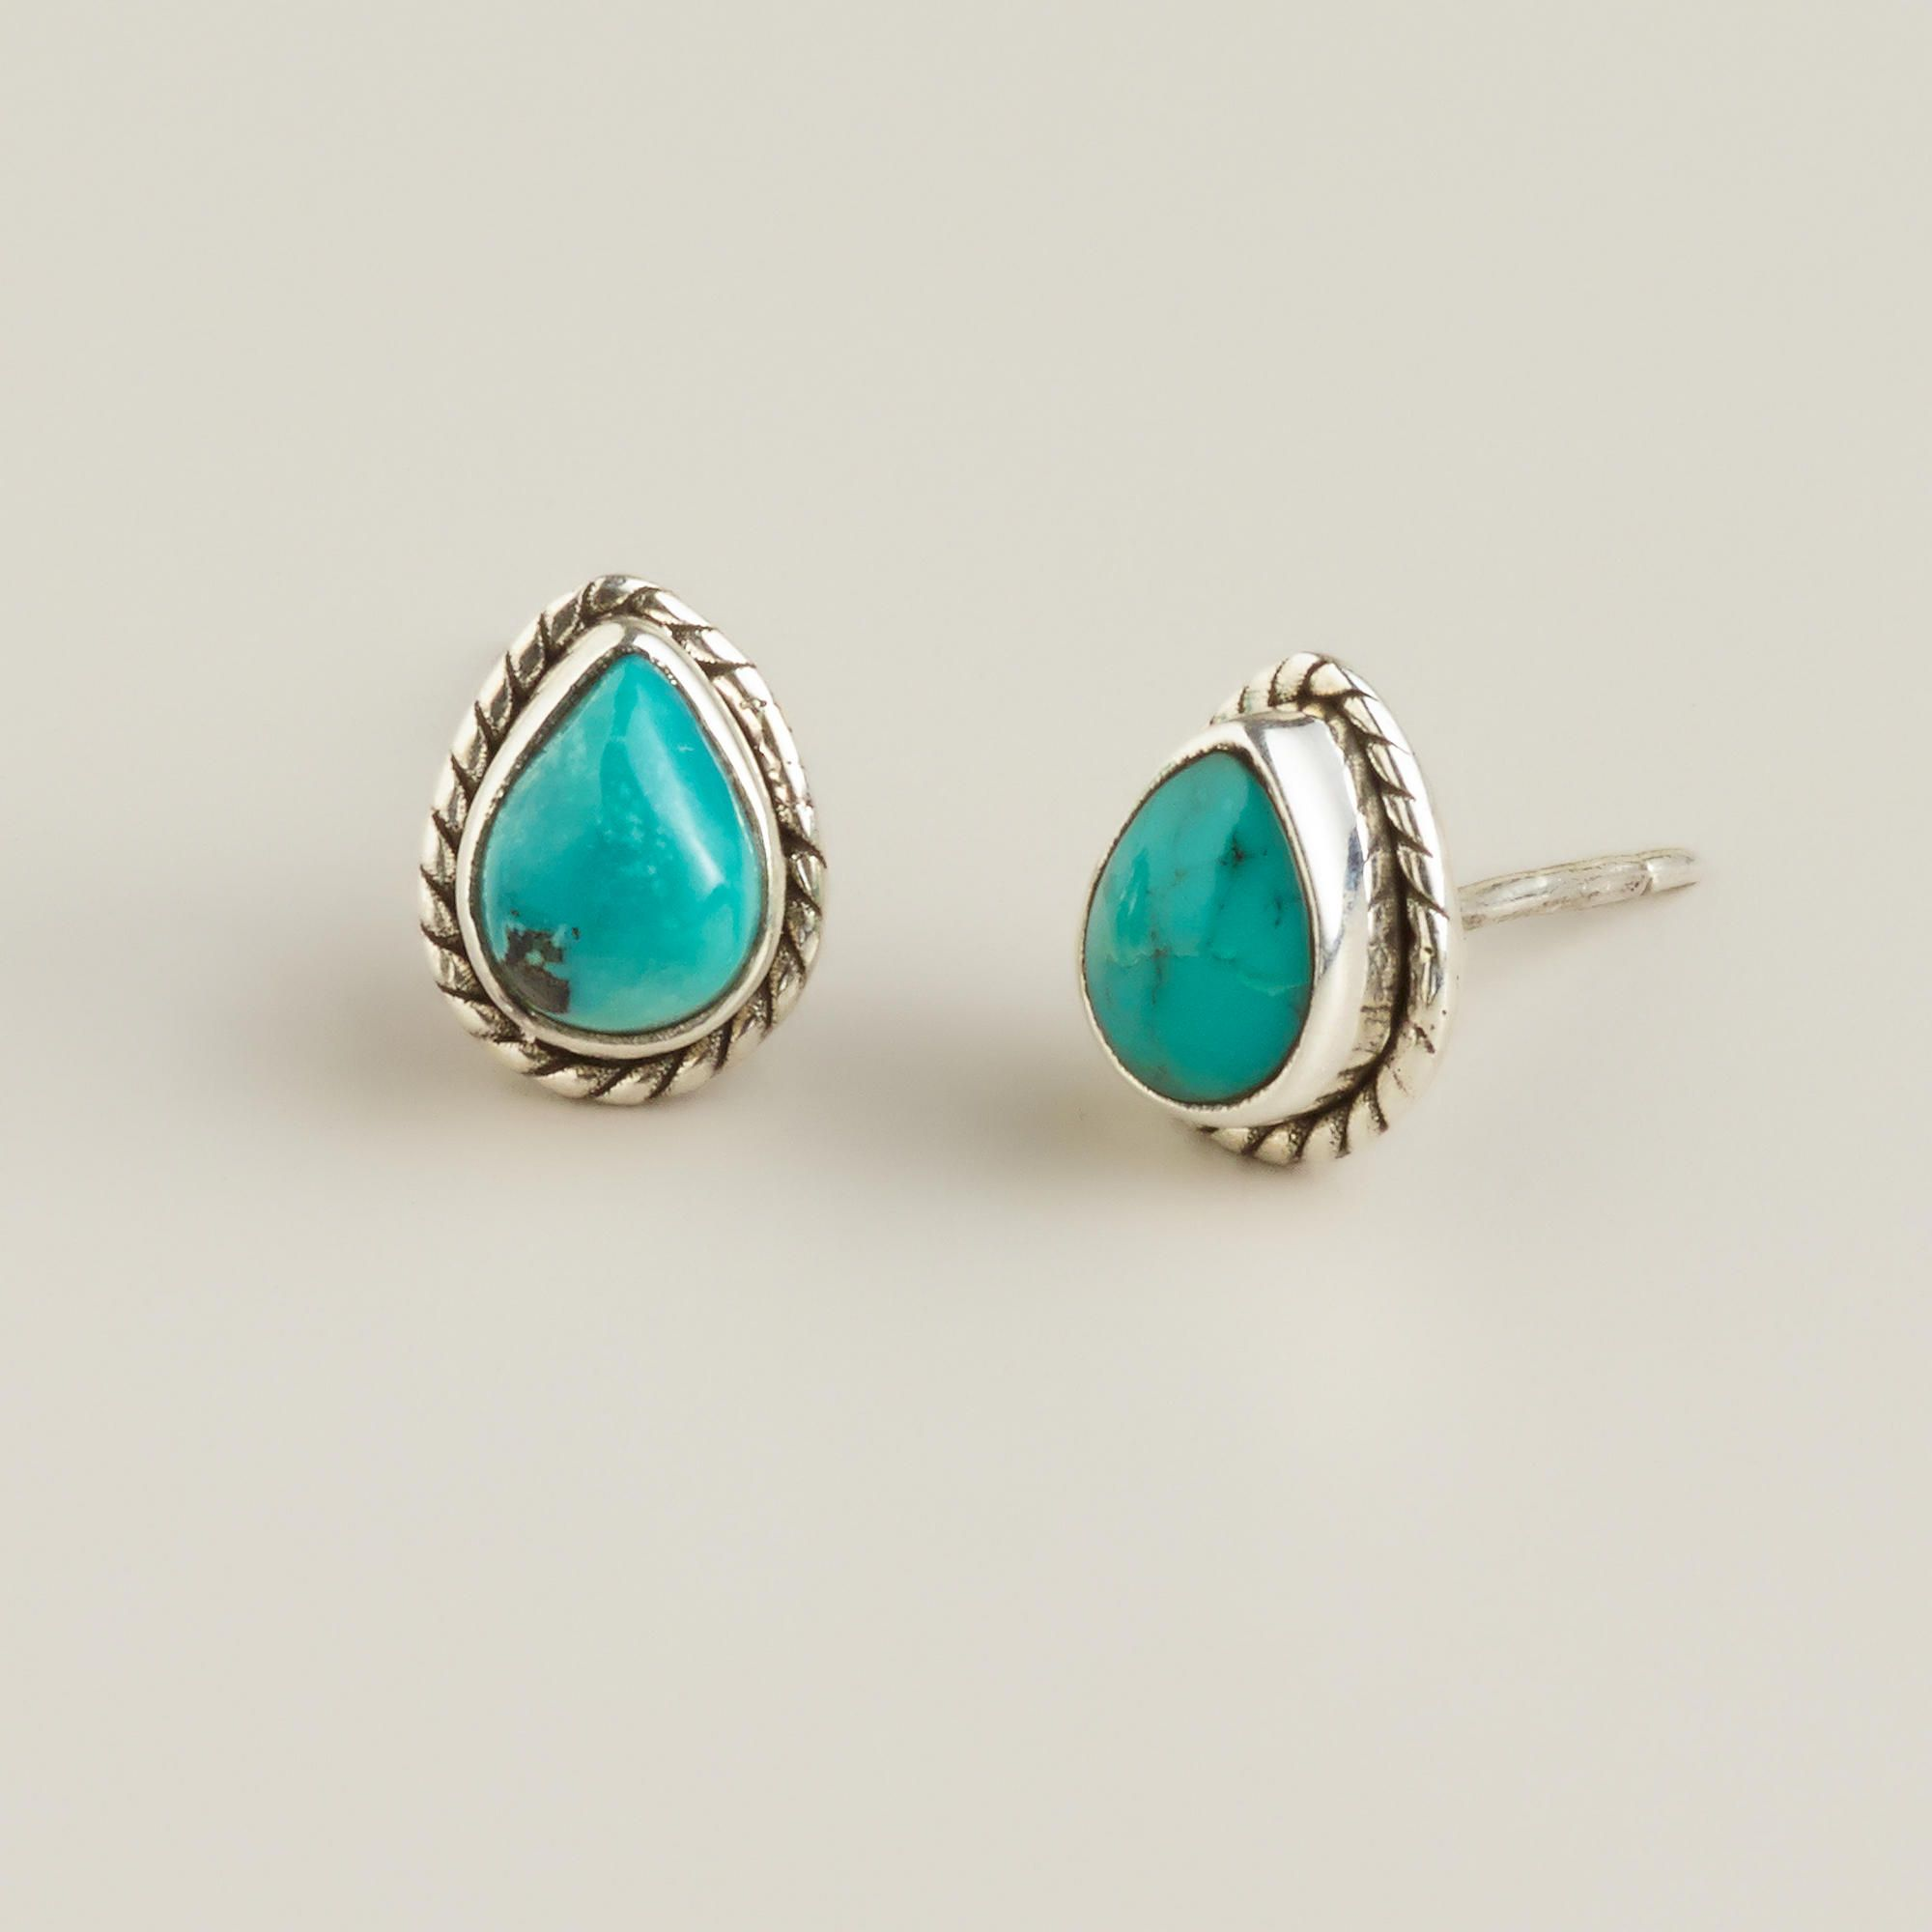 products earrings collections made acute turquoise patina gemstone stud drop